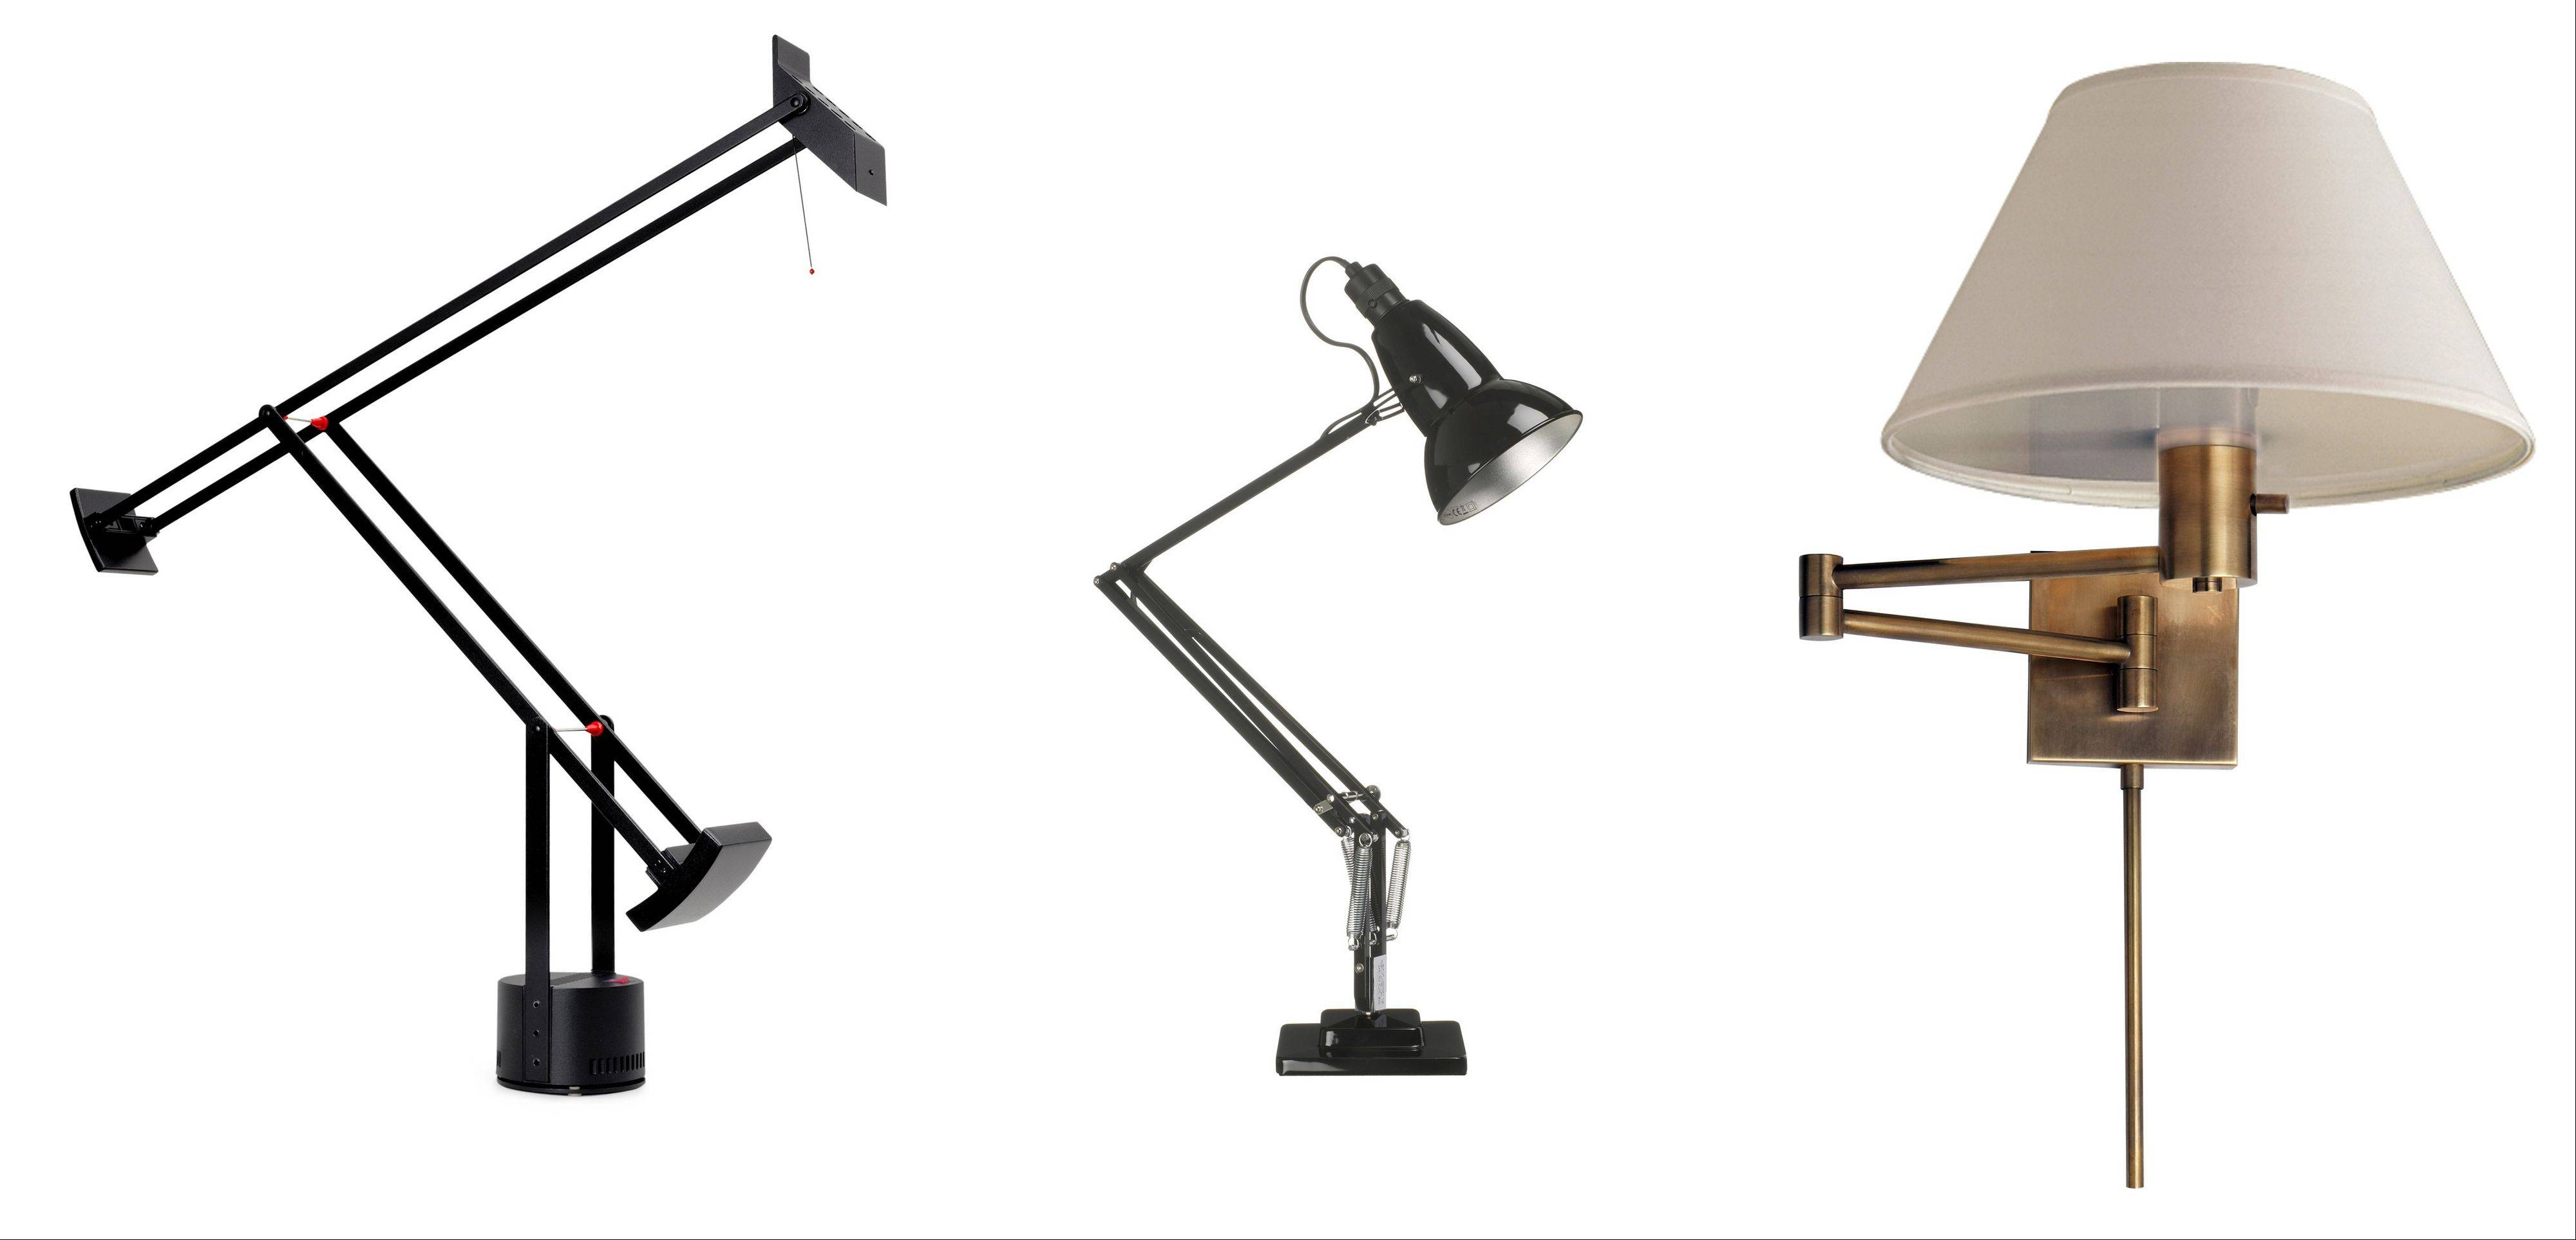 Classic lamps: From left, the Black Tizio Lamp; the Anglepoise Lamp Original 1227 desk lamp; and the swing-arm lamp in Hand-Rubbed Antique Brass.